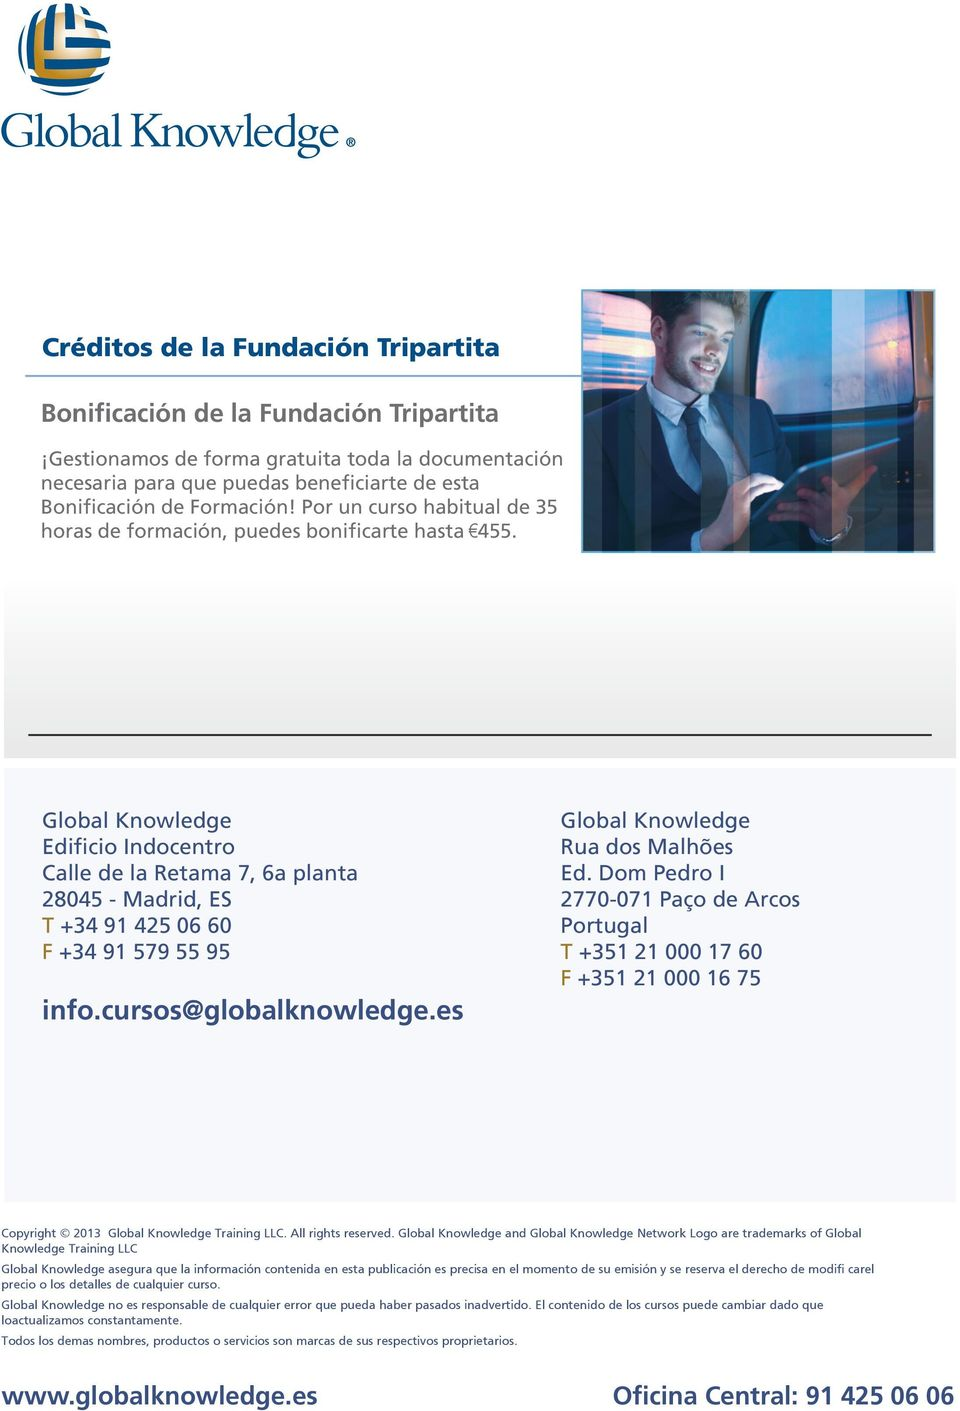 Global Knowledge Edificio Indocentro Calle de la Retama 7, 6a planta 28045 - Madrid, ES T +34 91 425 06 60 F +34 91 579 55 95 info.cursos@globalknowledge.es Global Knowledge Rua dos Malhões Ed.